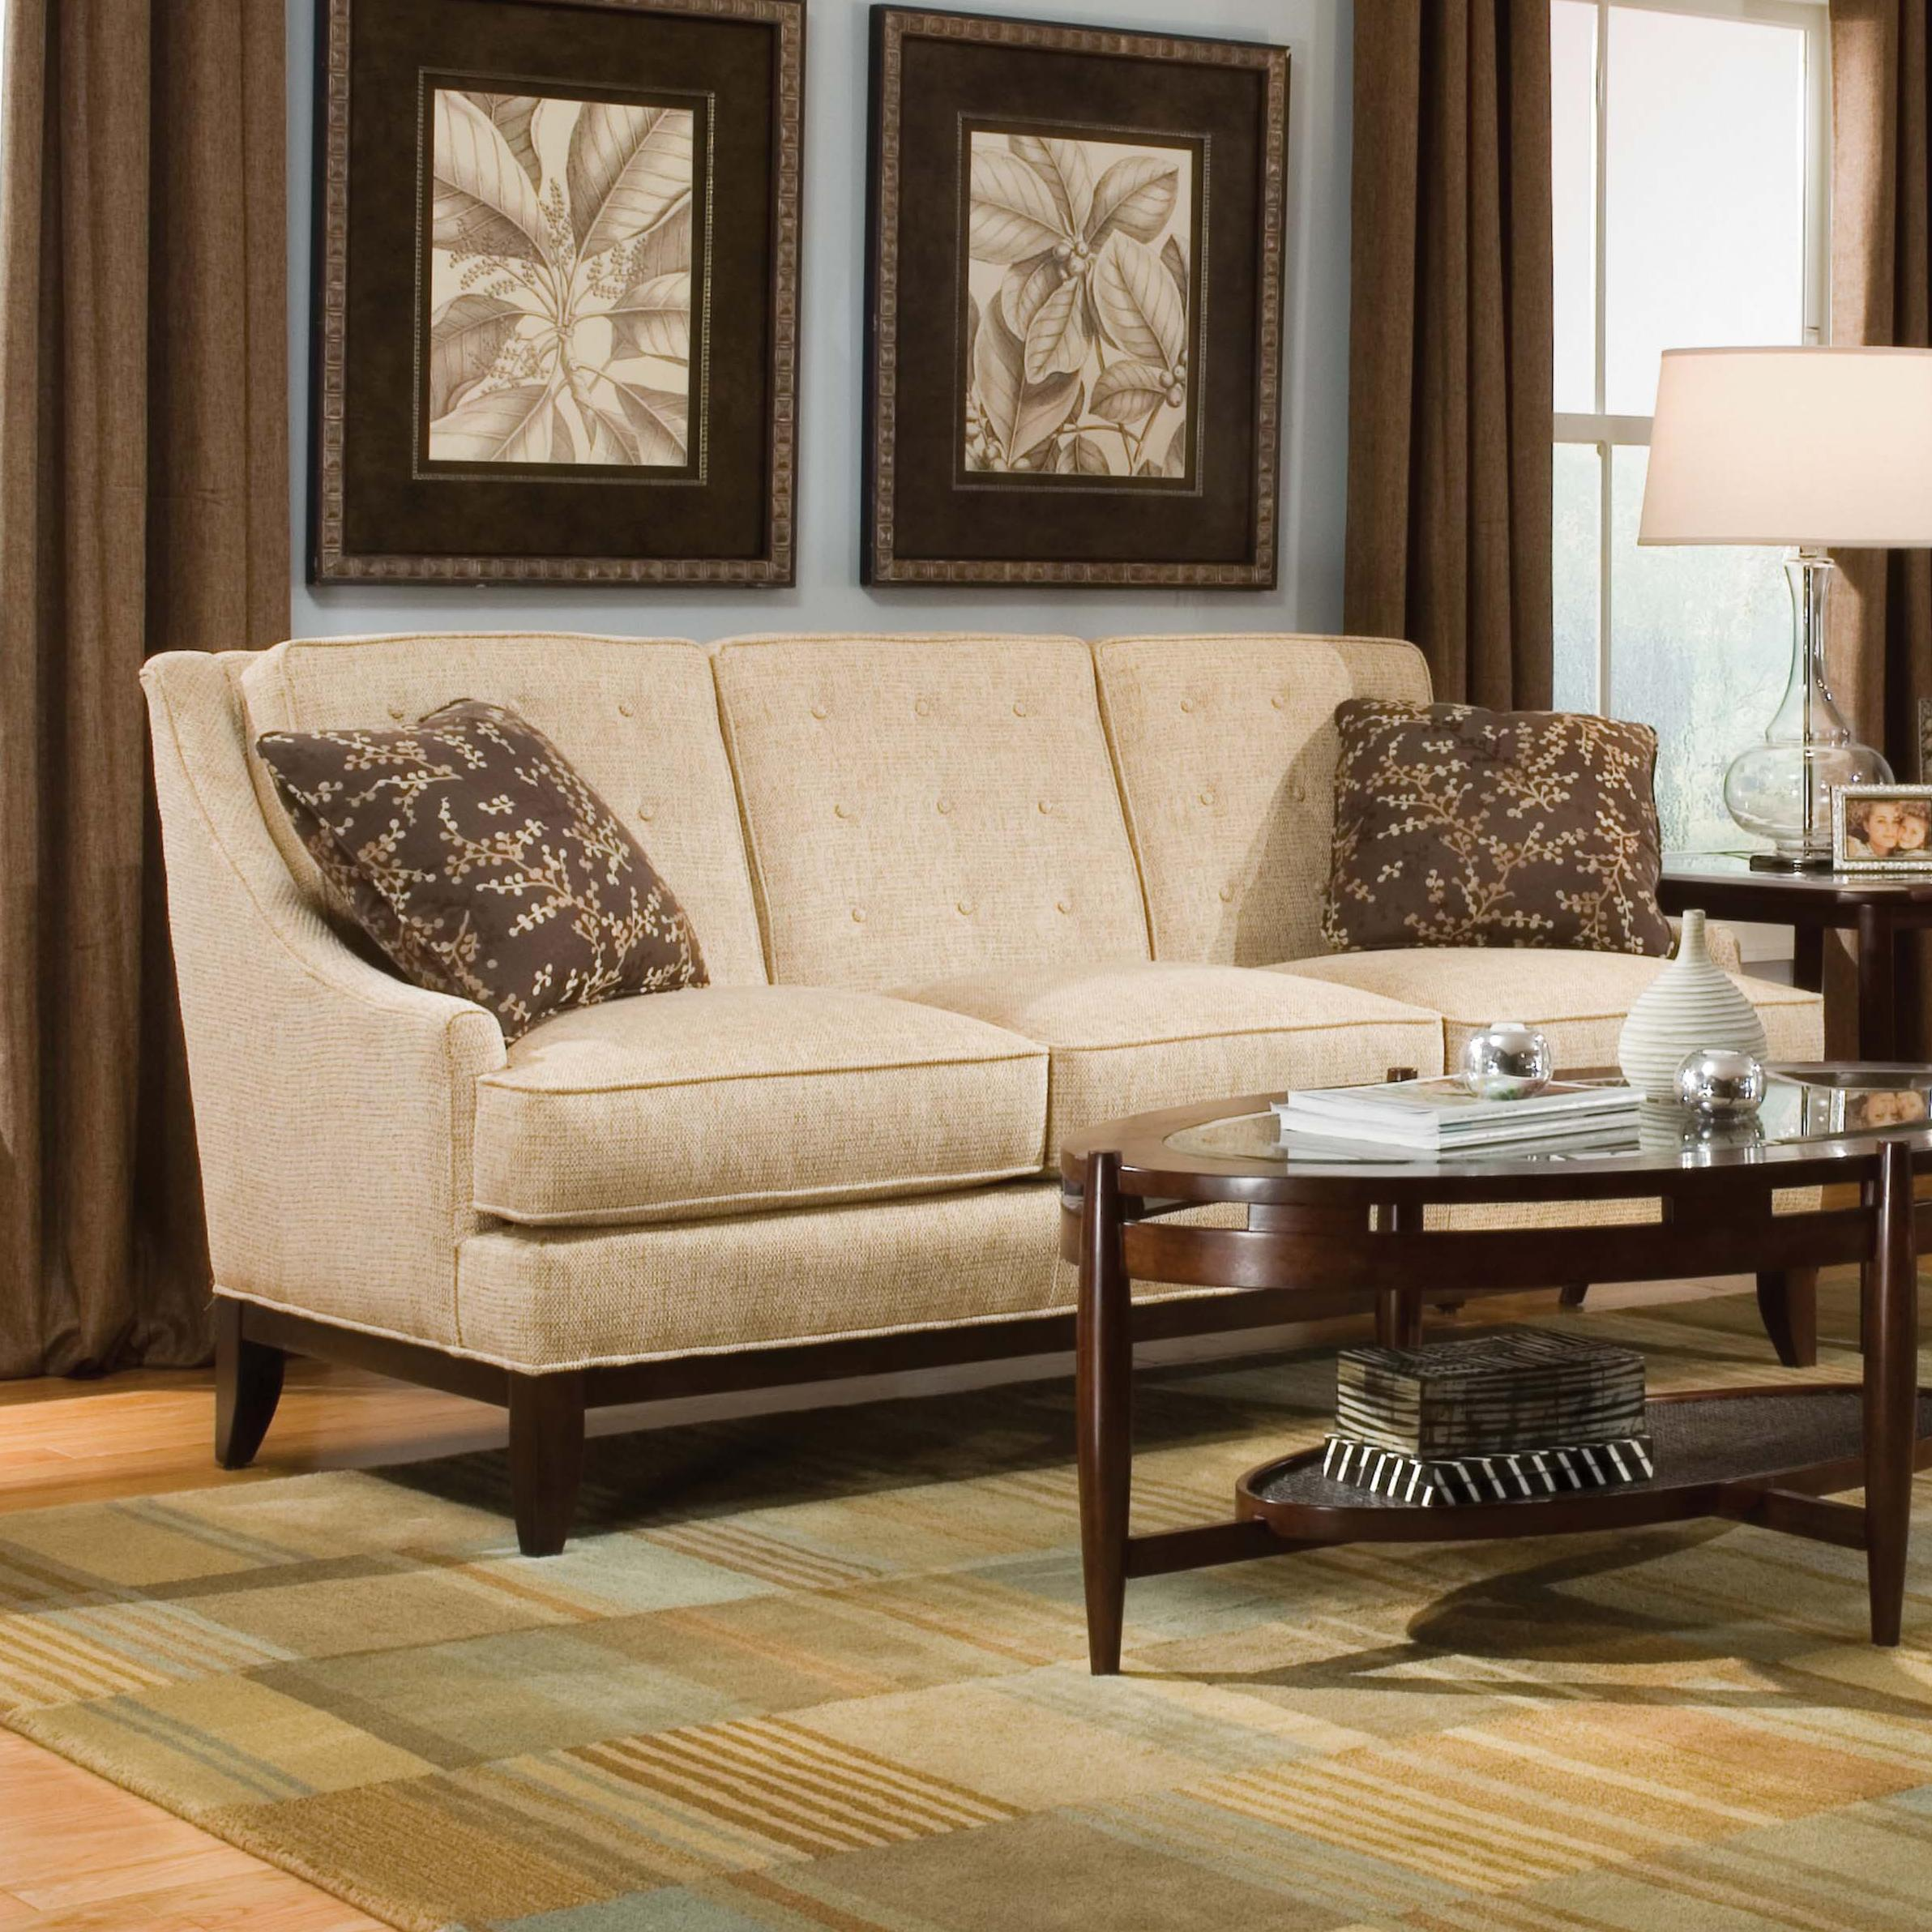 Sofa Mart Accent Chairs: Fairfield Sofa Accents Button Tufted Accent Sofa